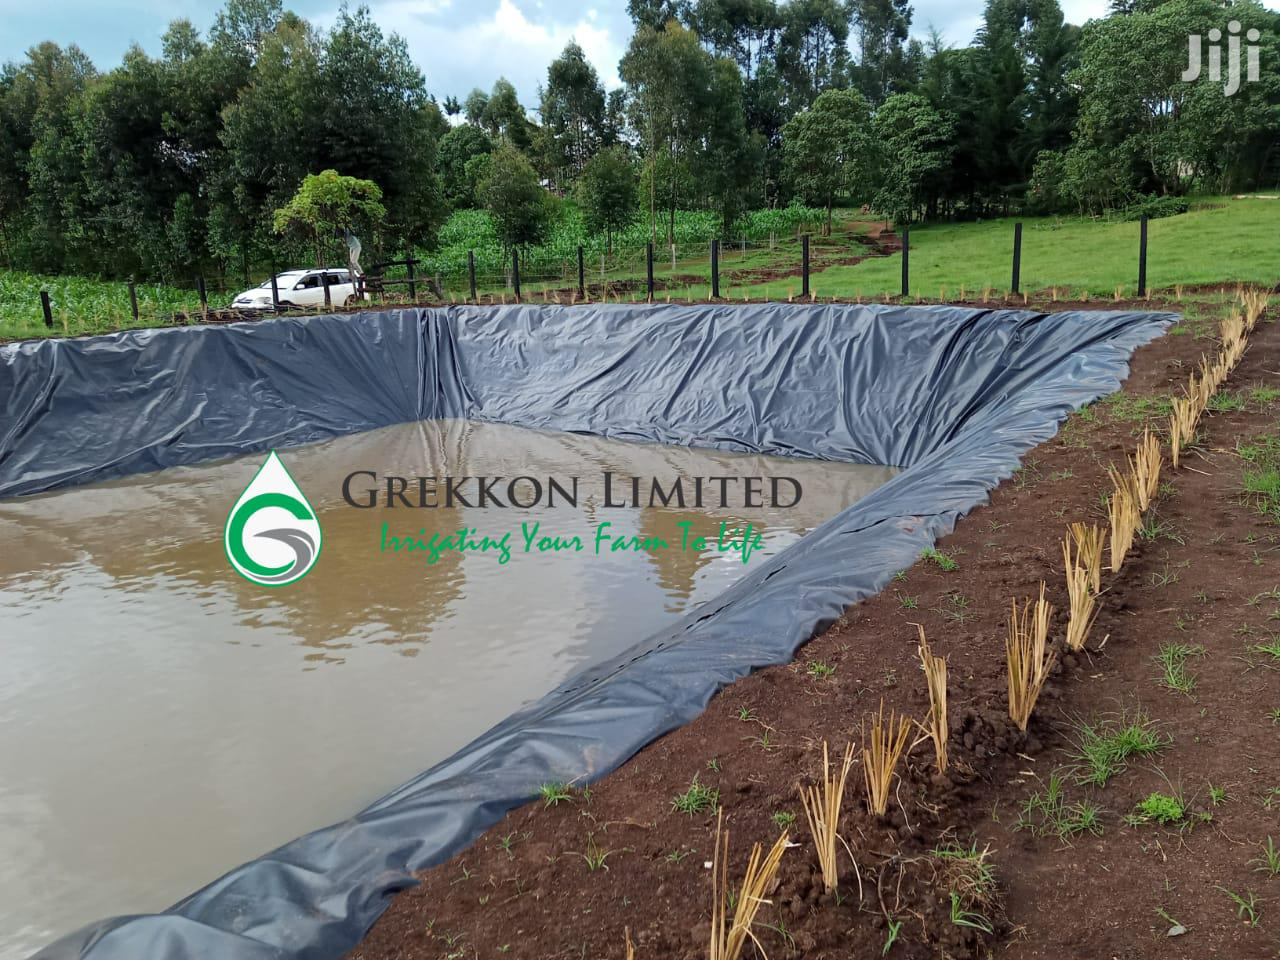 Best 0.5mm Dam Liner Price In Kenya | Grekkon Limited | Farm Machinery & Equipment for sale in Langas, Uasin Gishu, Kenya